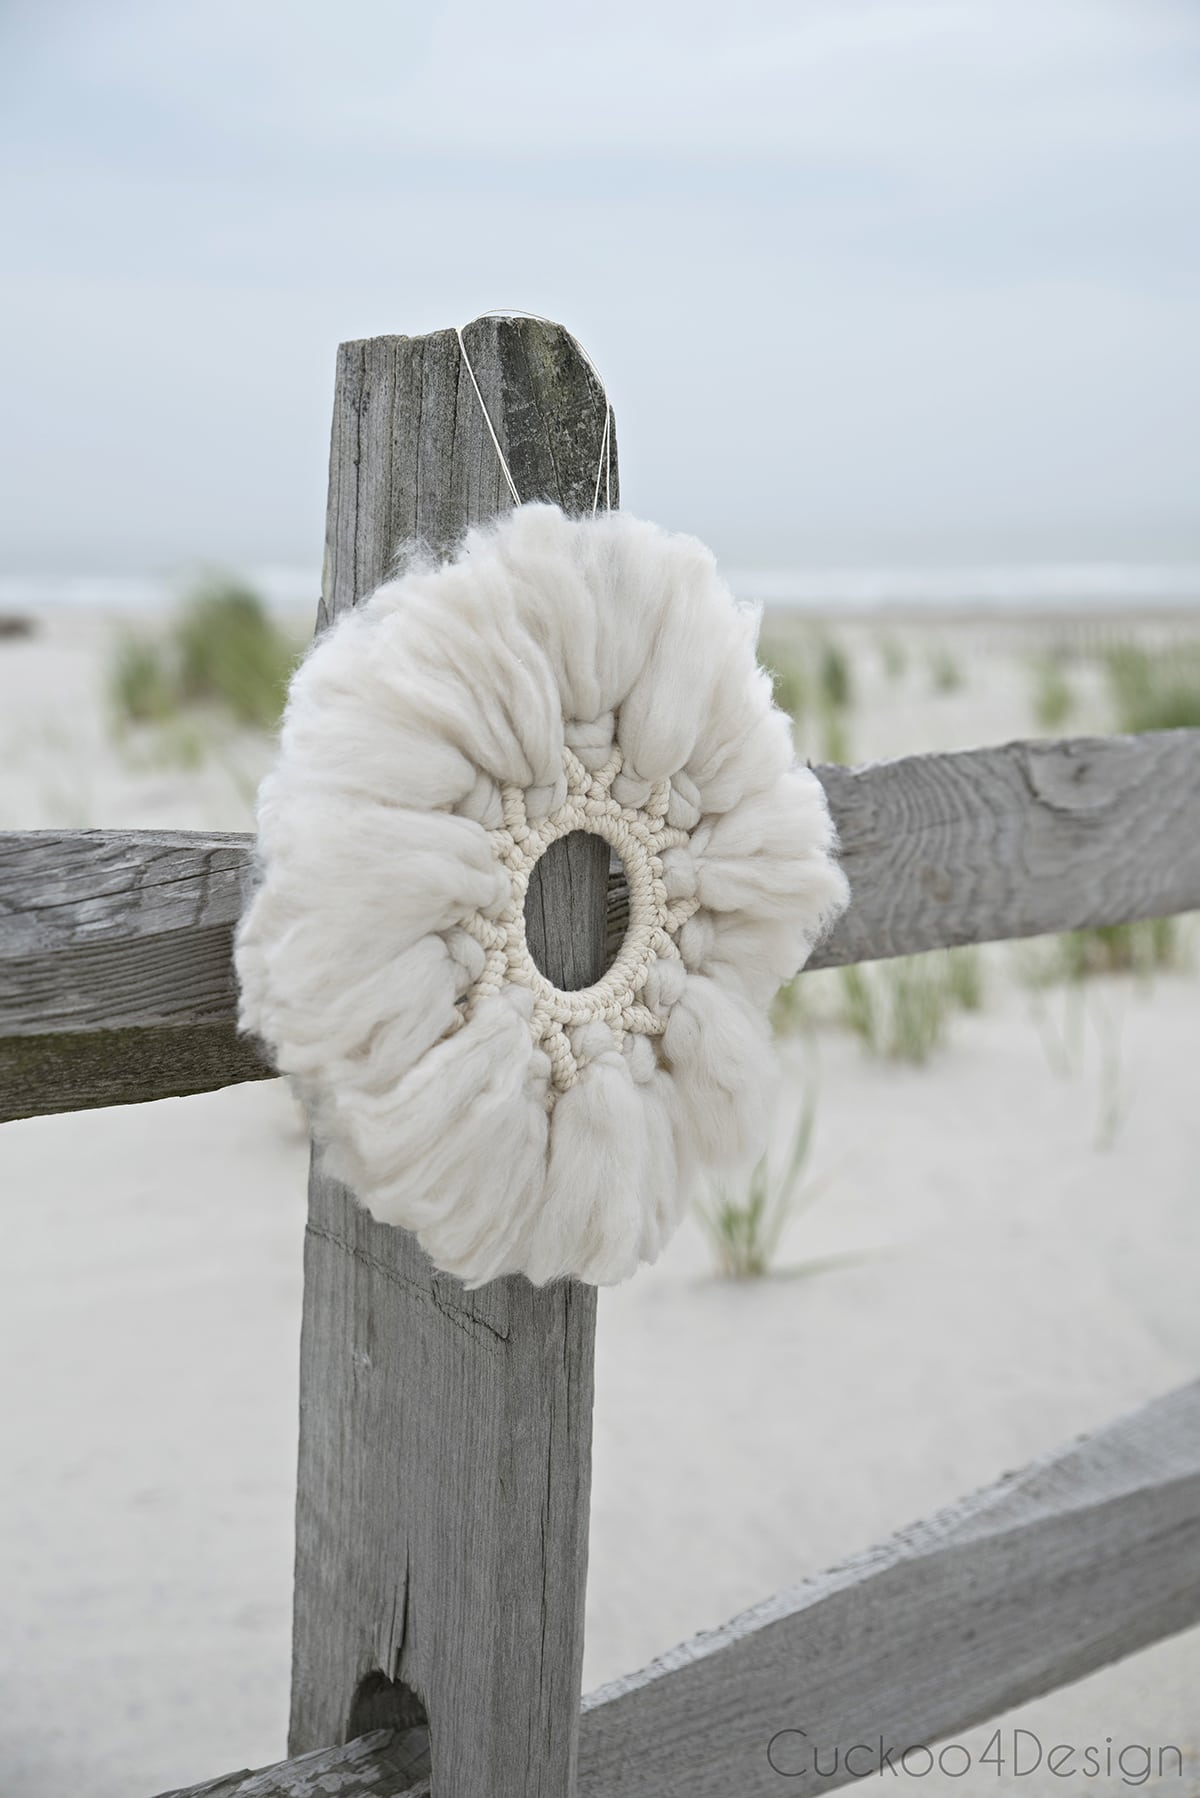 wool and yarn macrame wreath hanging on beach fence